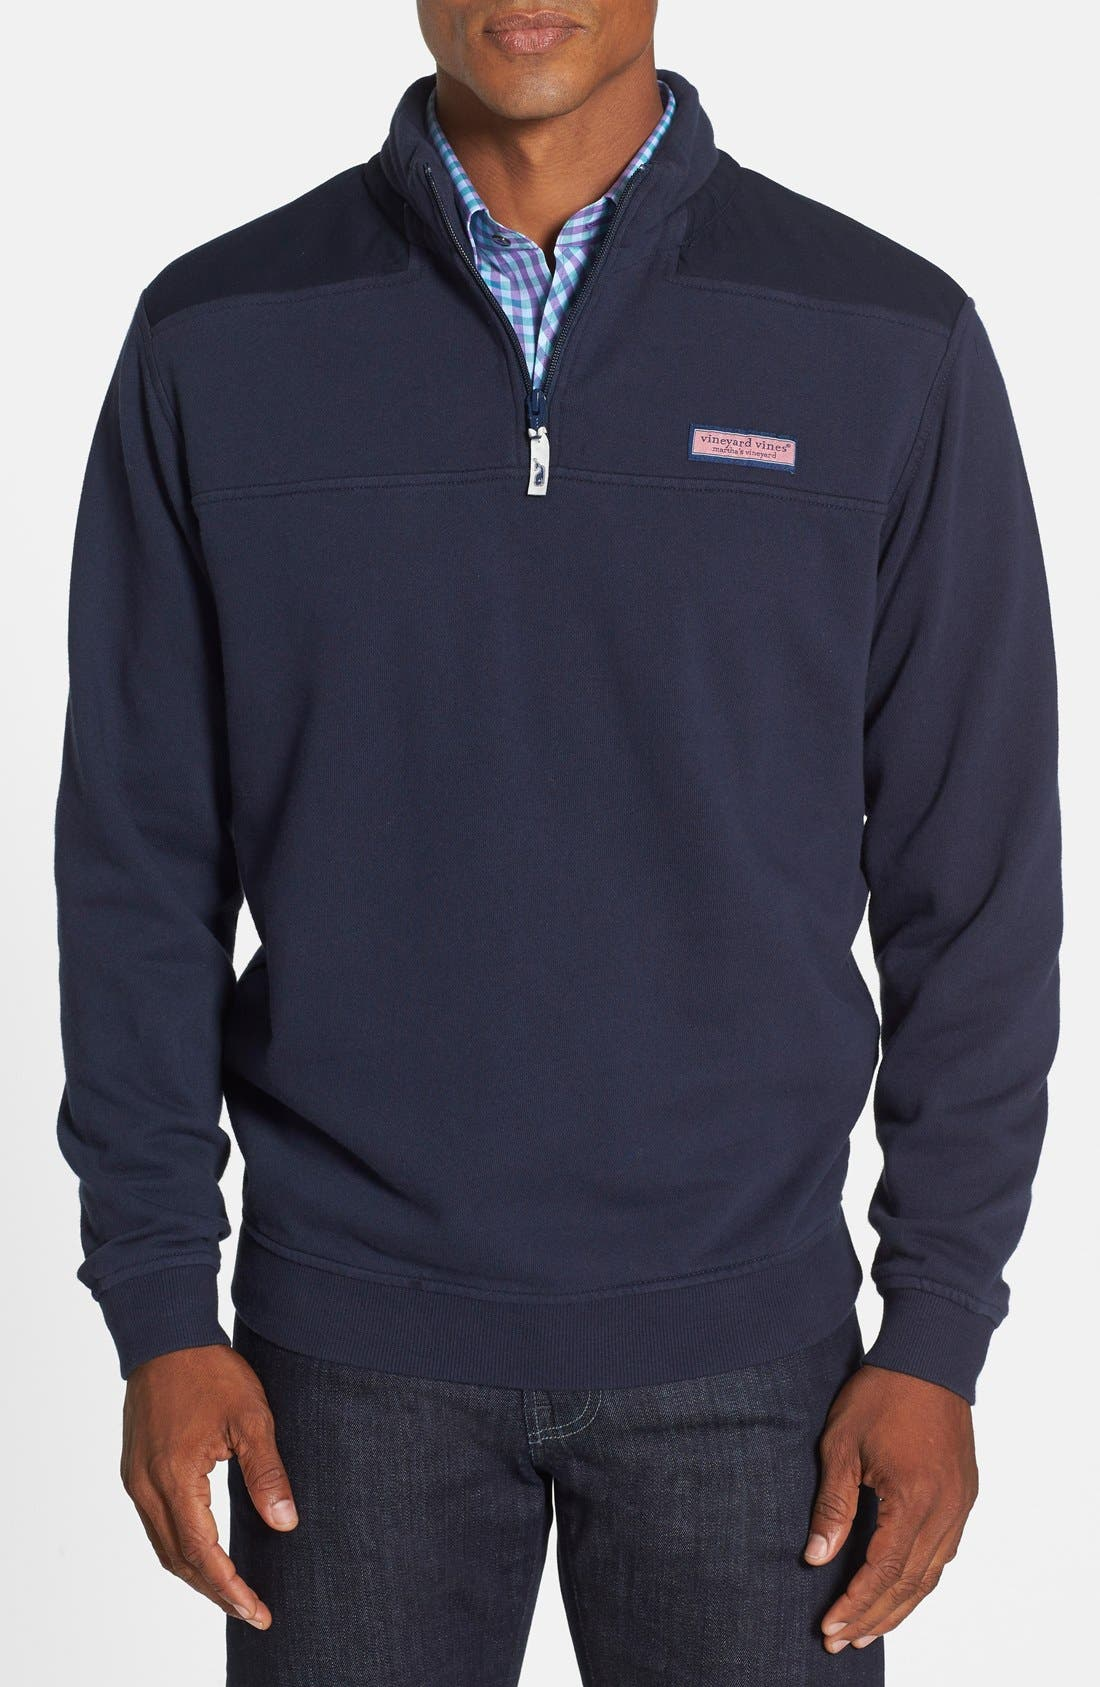 Alternate Image 1 Selected - vineyard vines Shep Quarter Zip Pullover Sweatshirt